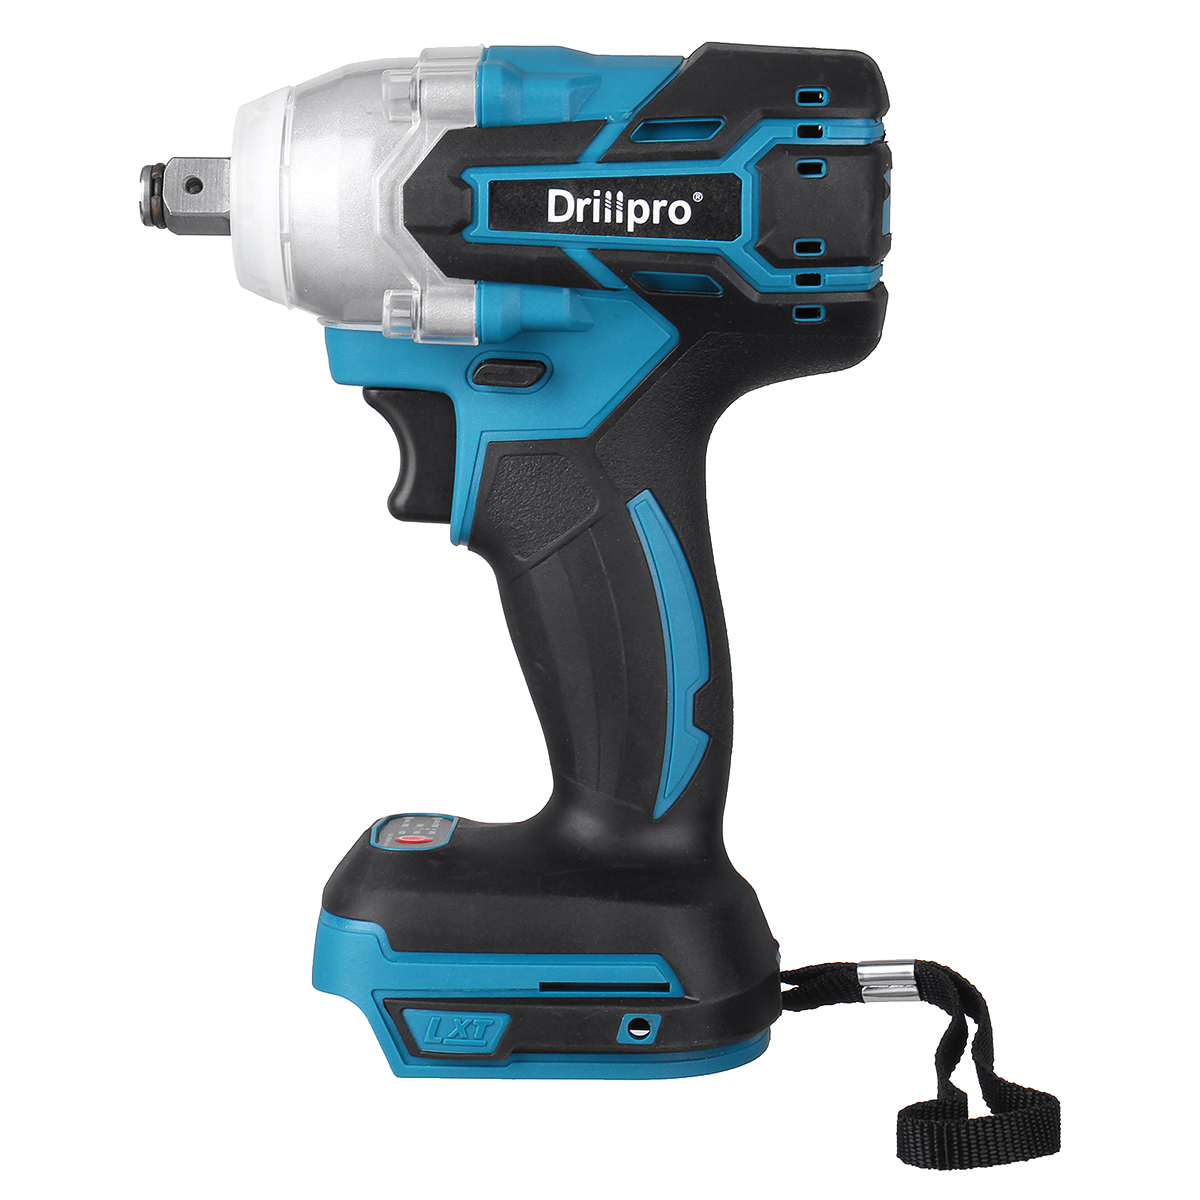 Motor 18V DTW285Z Wrench Brushless 2inch LED Square Adapted Cordless Wrench Driver Makita M Impact With 280N To 1 Electric Light